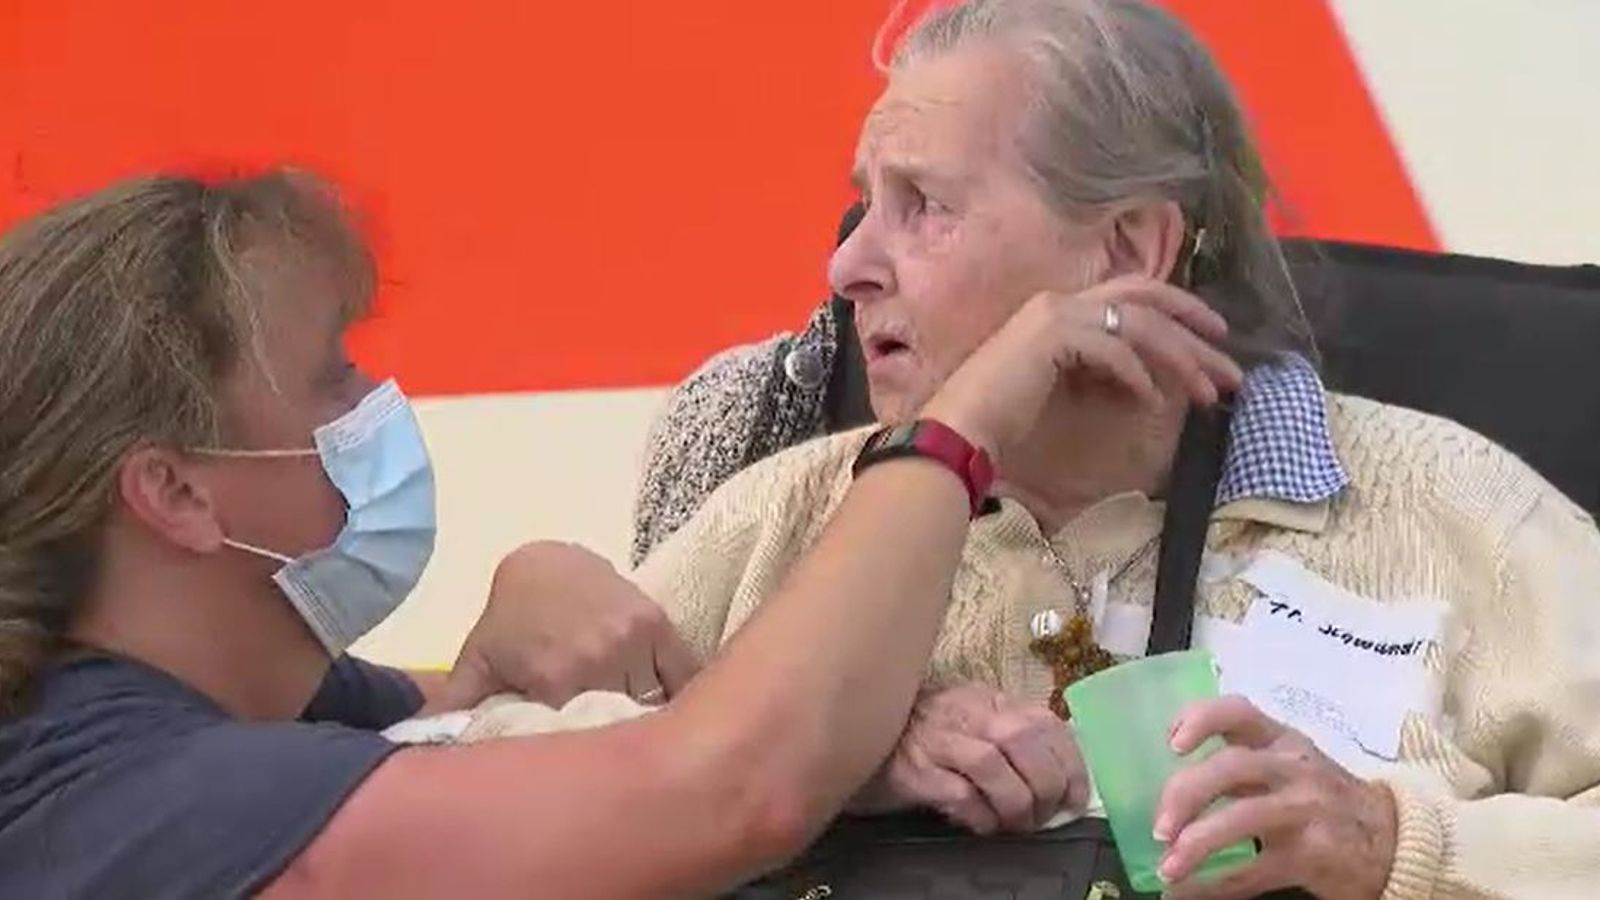 Germany: 'The floods were a huge surprise and shock' – lives turned upside down at care home